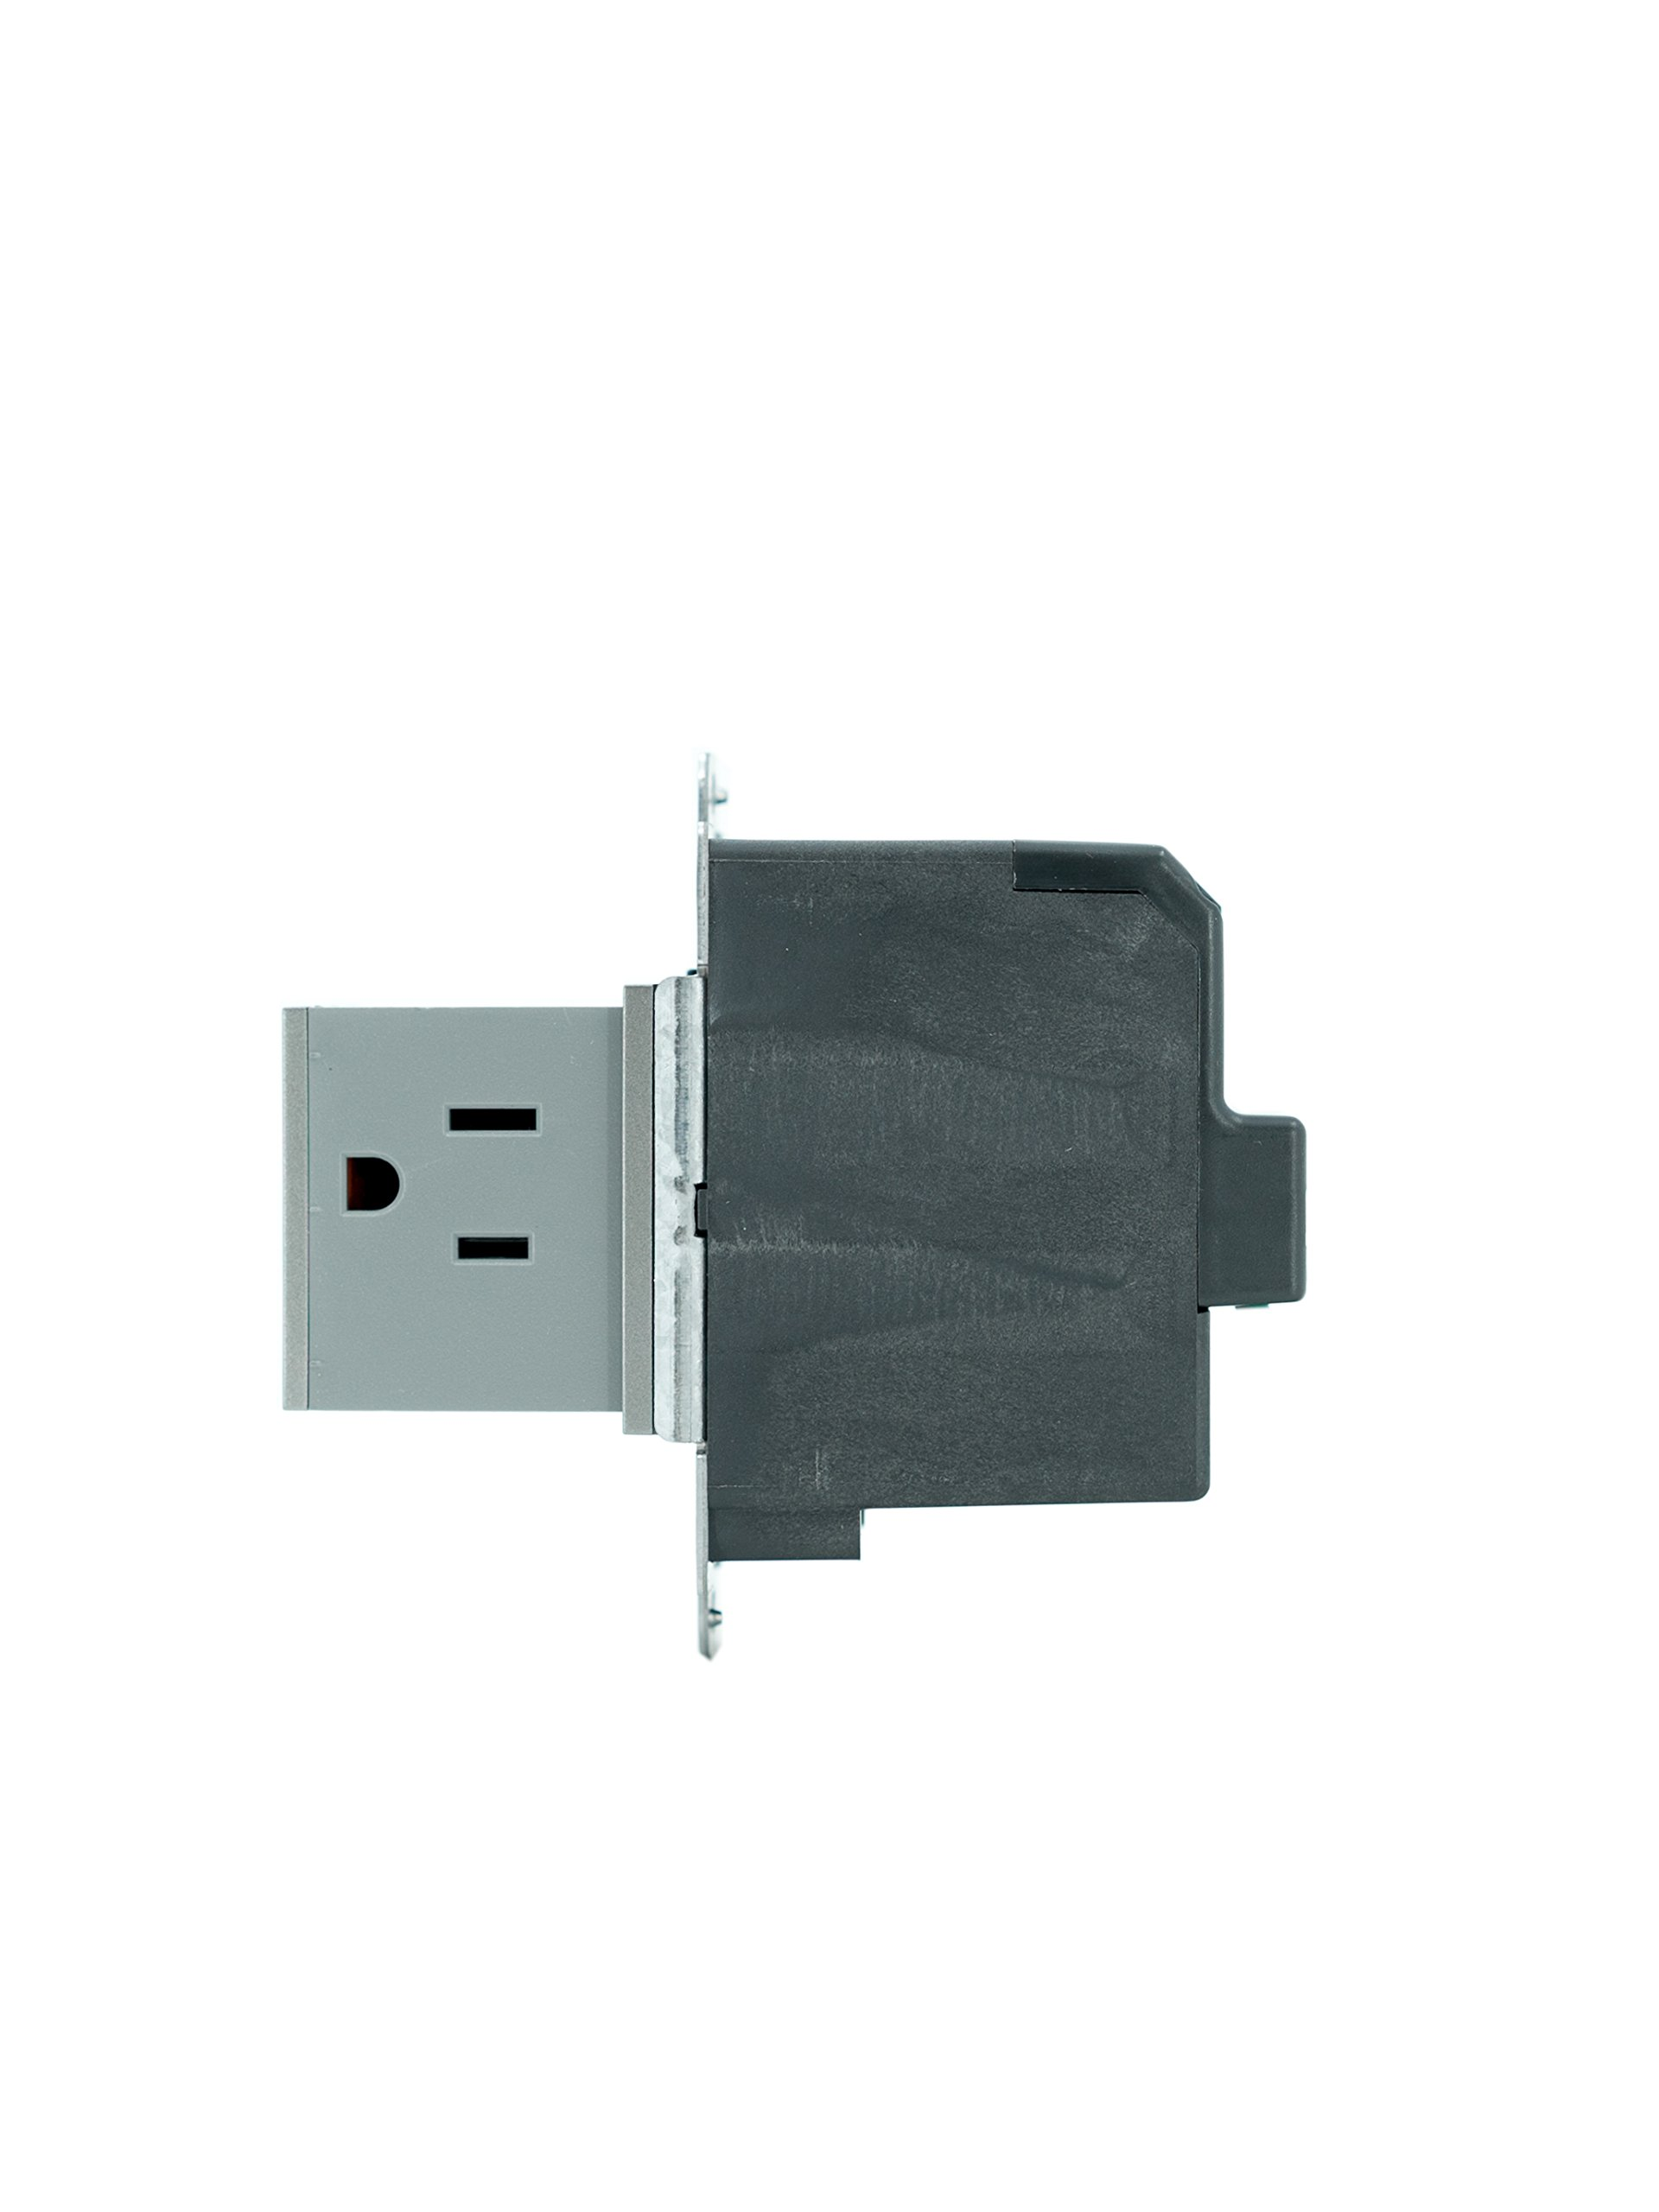 PASS & SEYMOUR ARPTR151GM2 Adorne 1 Gang Magnesium Pop Out Outlet by Pass & Seymour (Image #2)